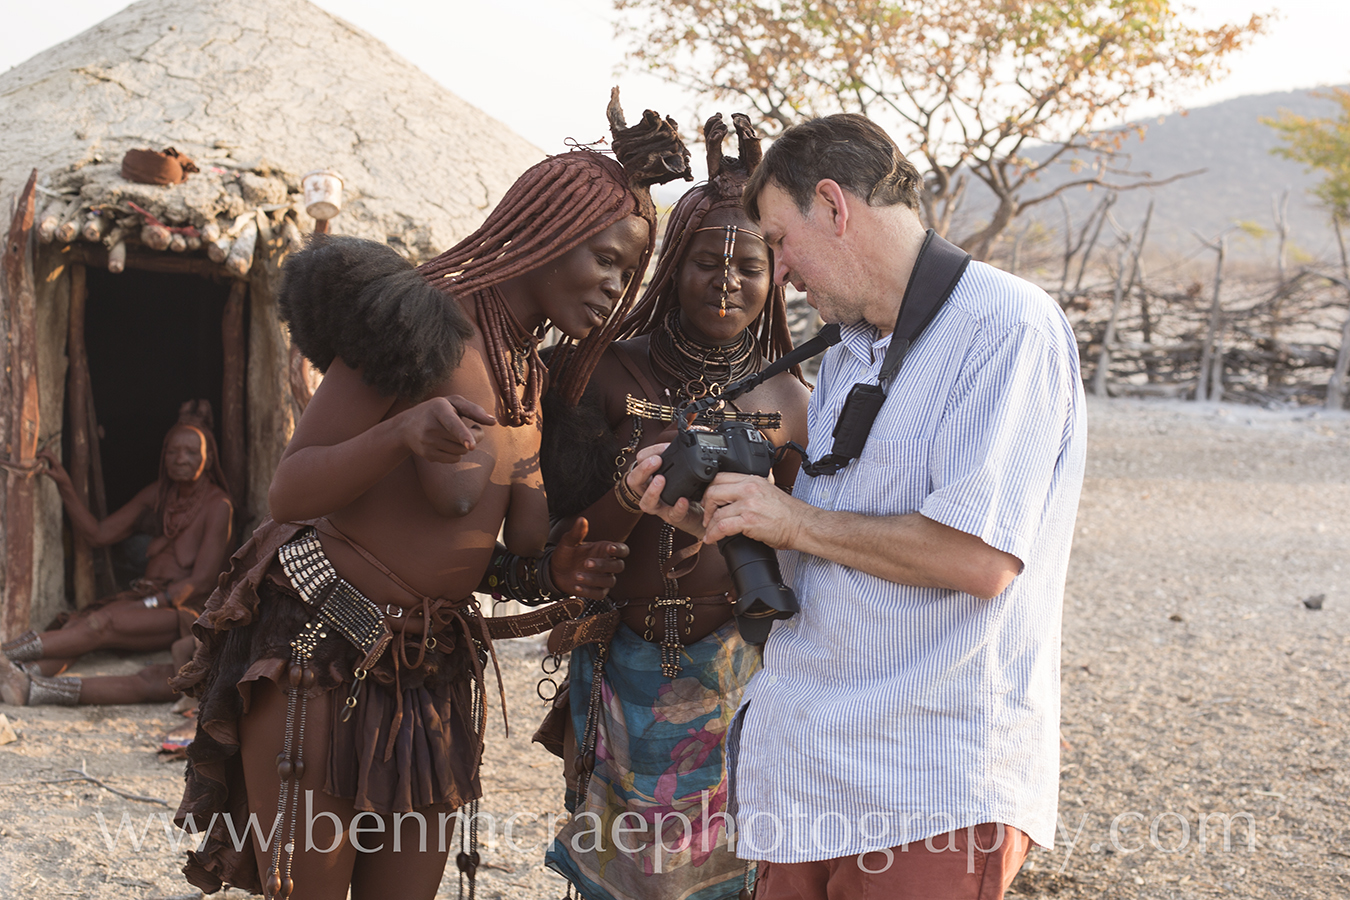 PHOTOGRAPHING THE HIMBA